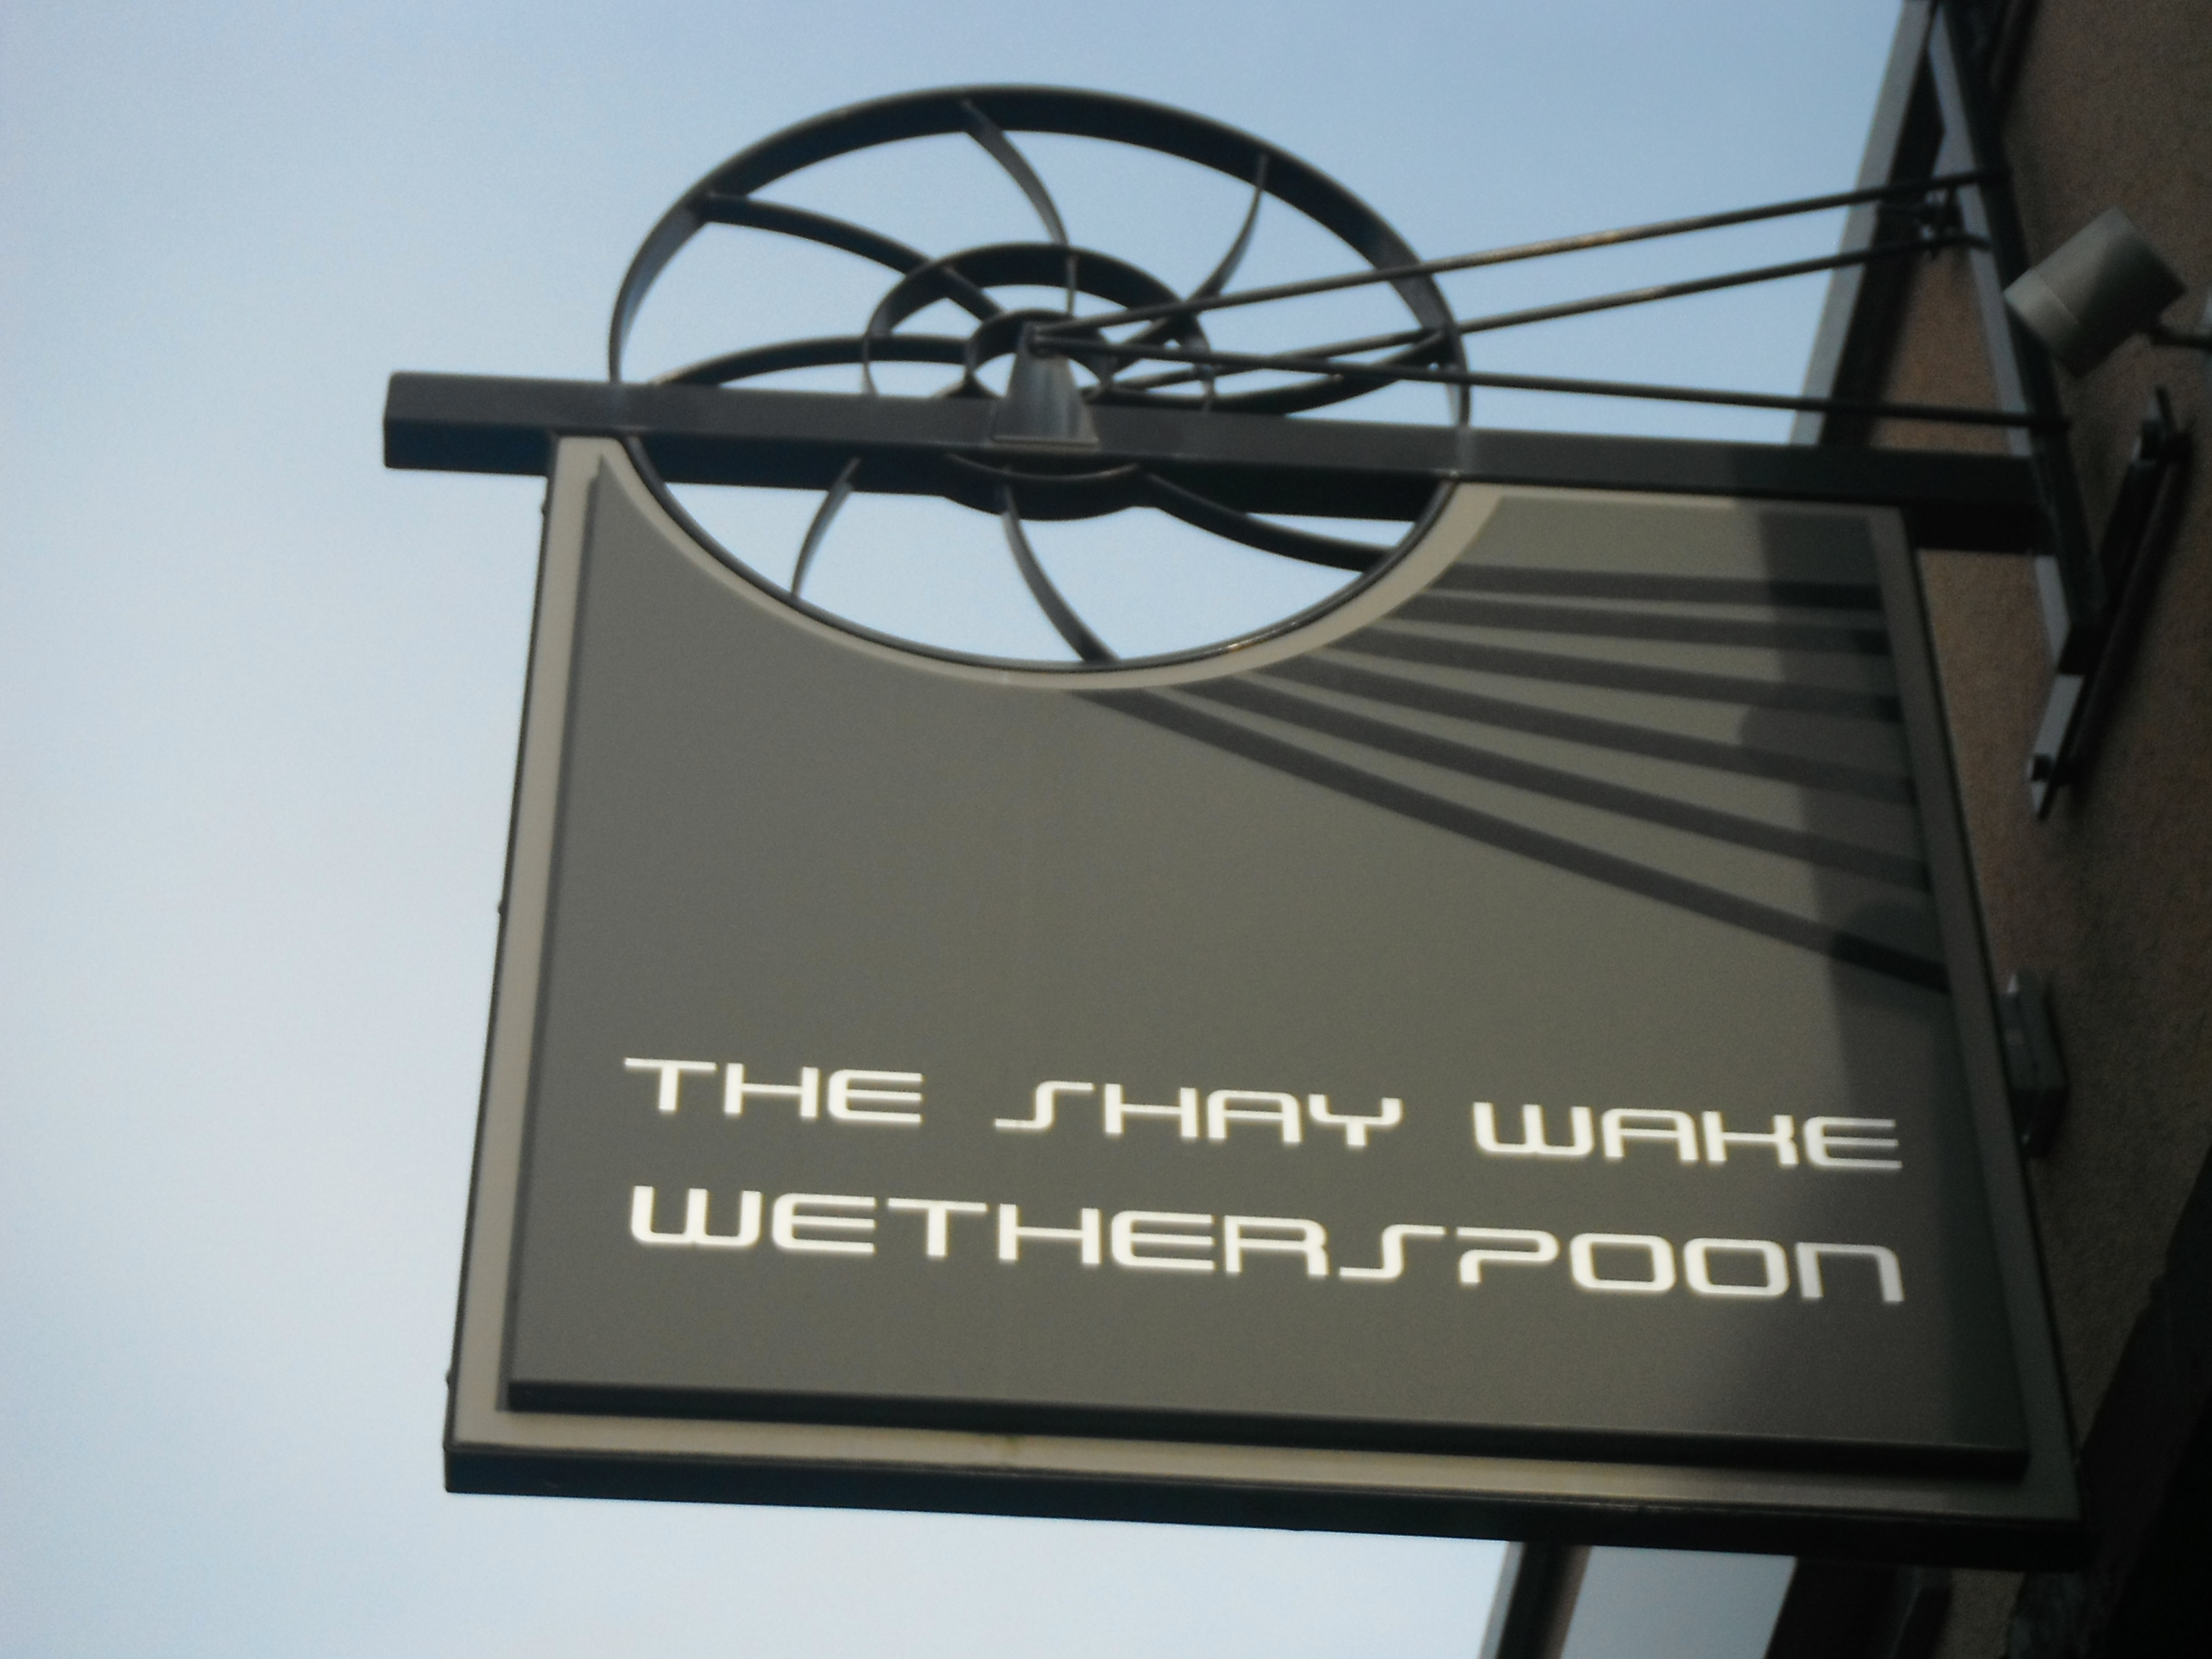 Photo taken by me – The Shay Wake pub sign, Shaw, Oldham